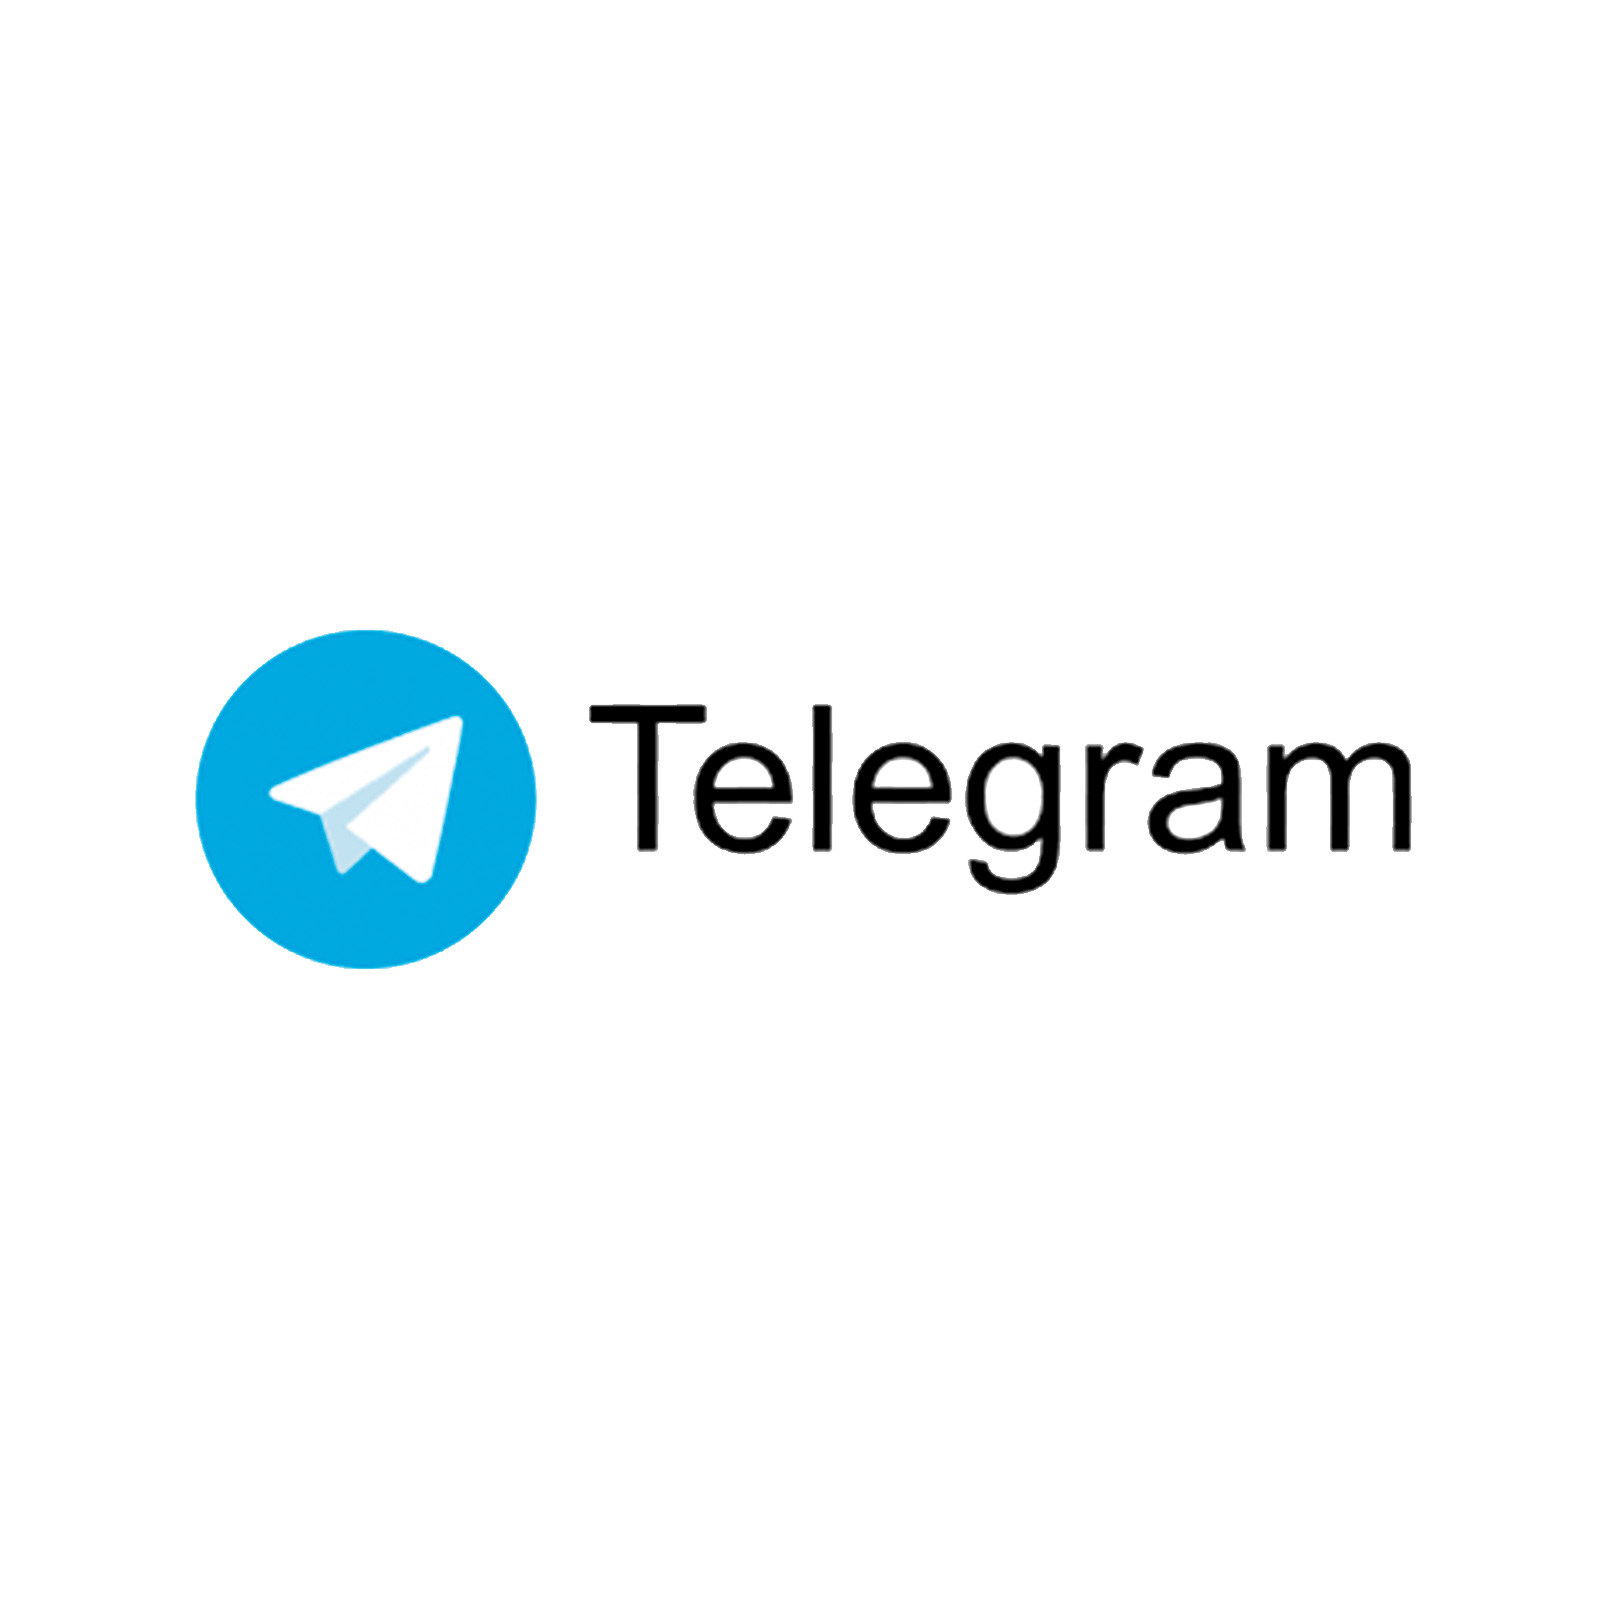 This instant messaging network is similar to WhatsApp and is available across platforms in more than eight languages. However, Telegram has always focused more on the privacy and security of the messages you send over the internet by using its platform. So, it empowers you to send messages that are encrypted and self-destructive. This encryption feature has only just been made available for WhatsApp, whereas Telegram has always provided it.